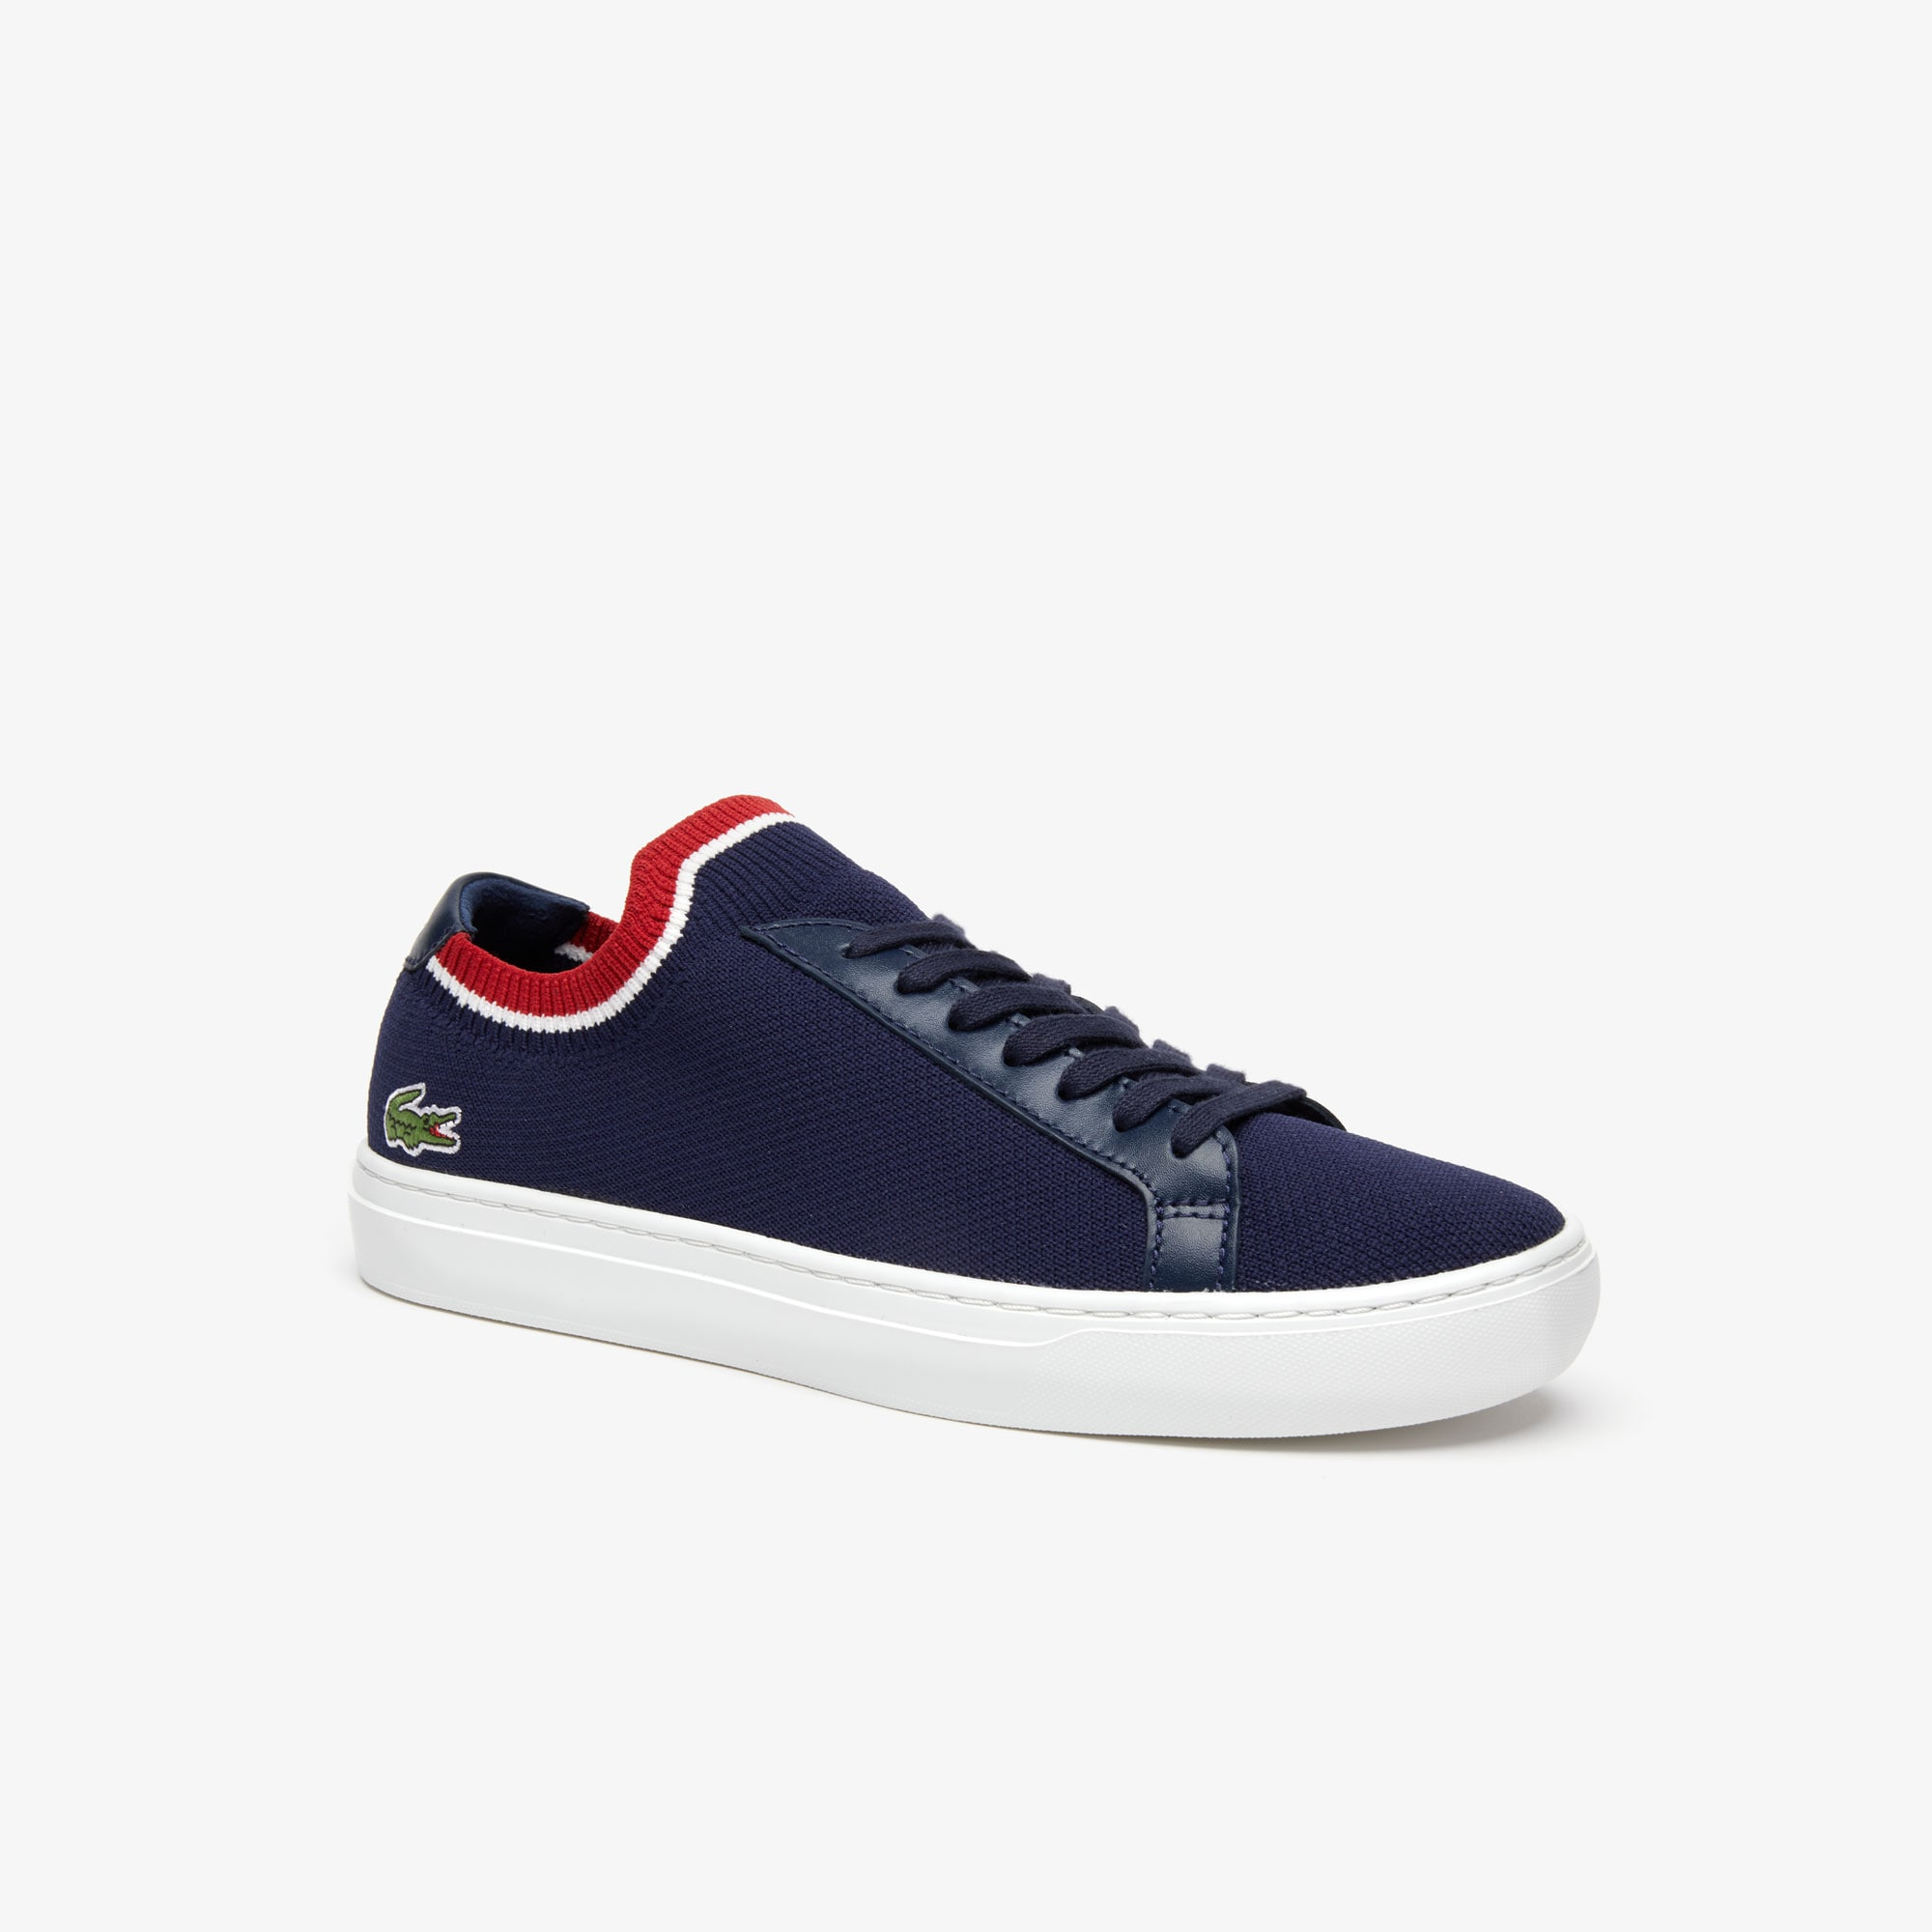 39bdaa2aaaf4 Lacoste shoes for men  Sneakers